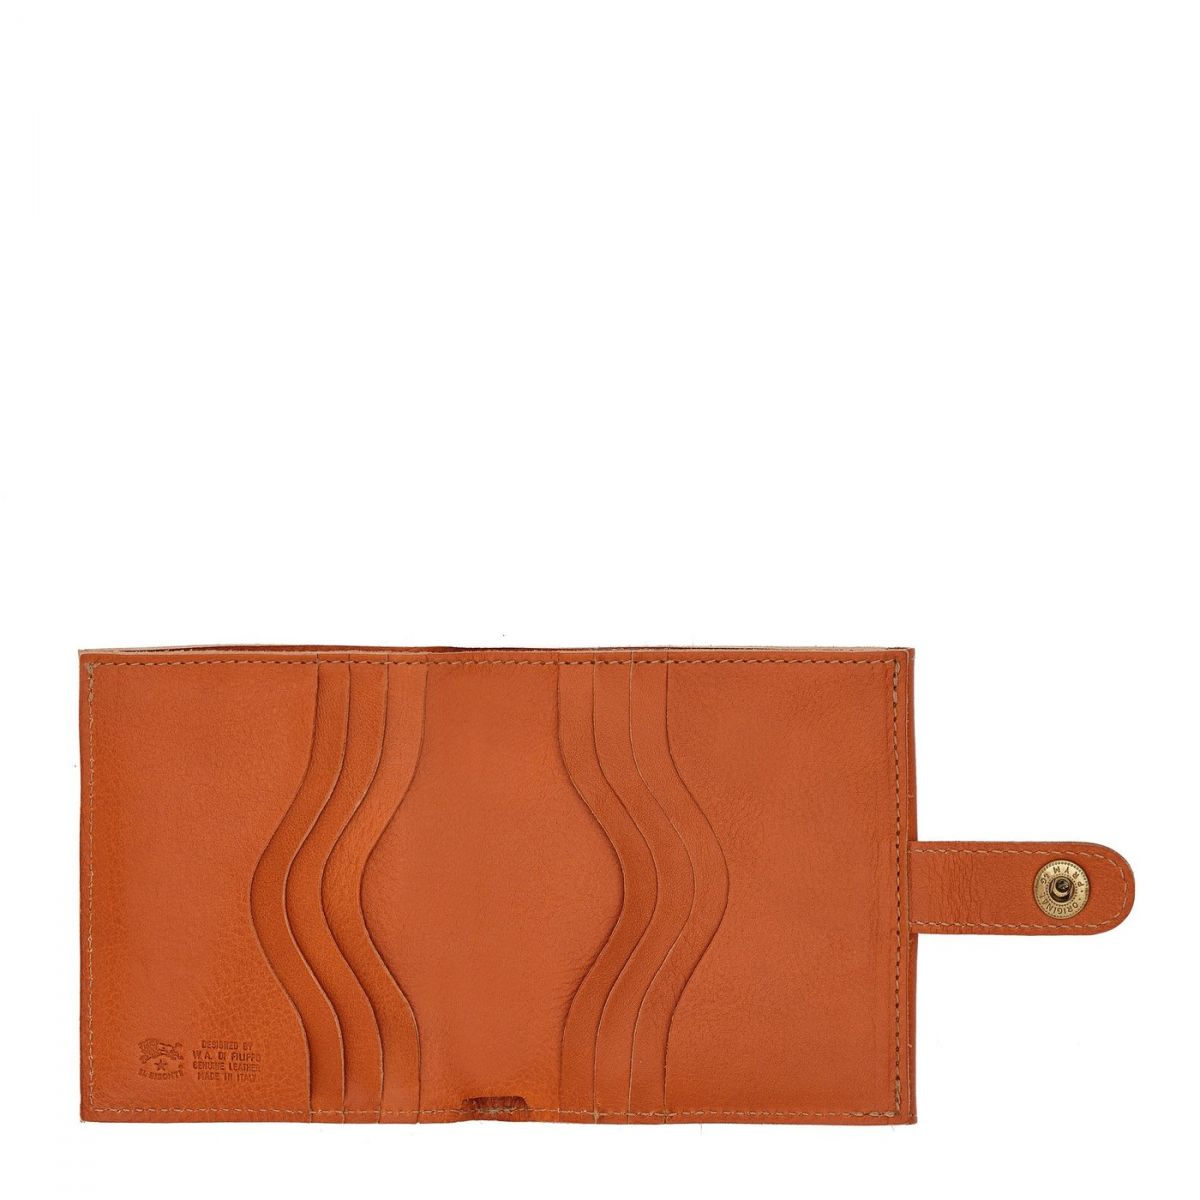 Men's Bi-Fold Wallet  in Cowhide Double Leather SBW030 color Caramel | Details